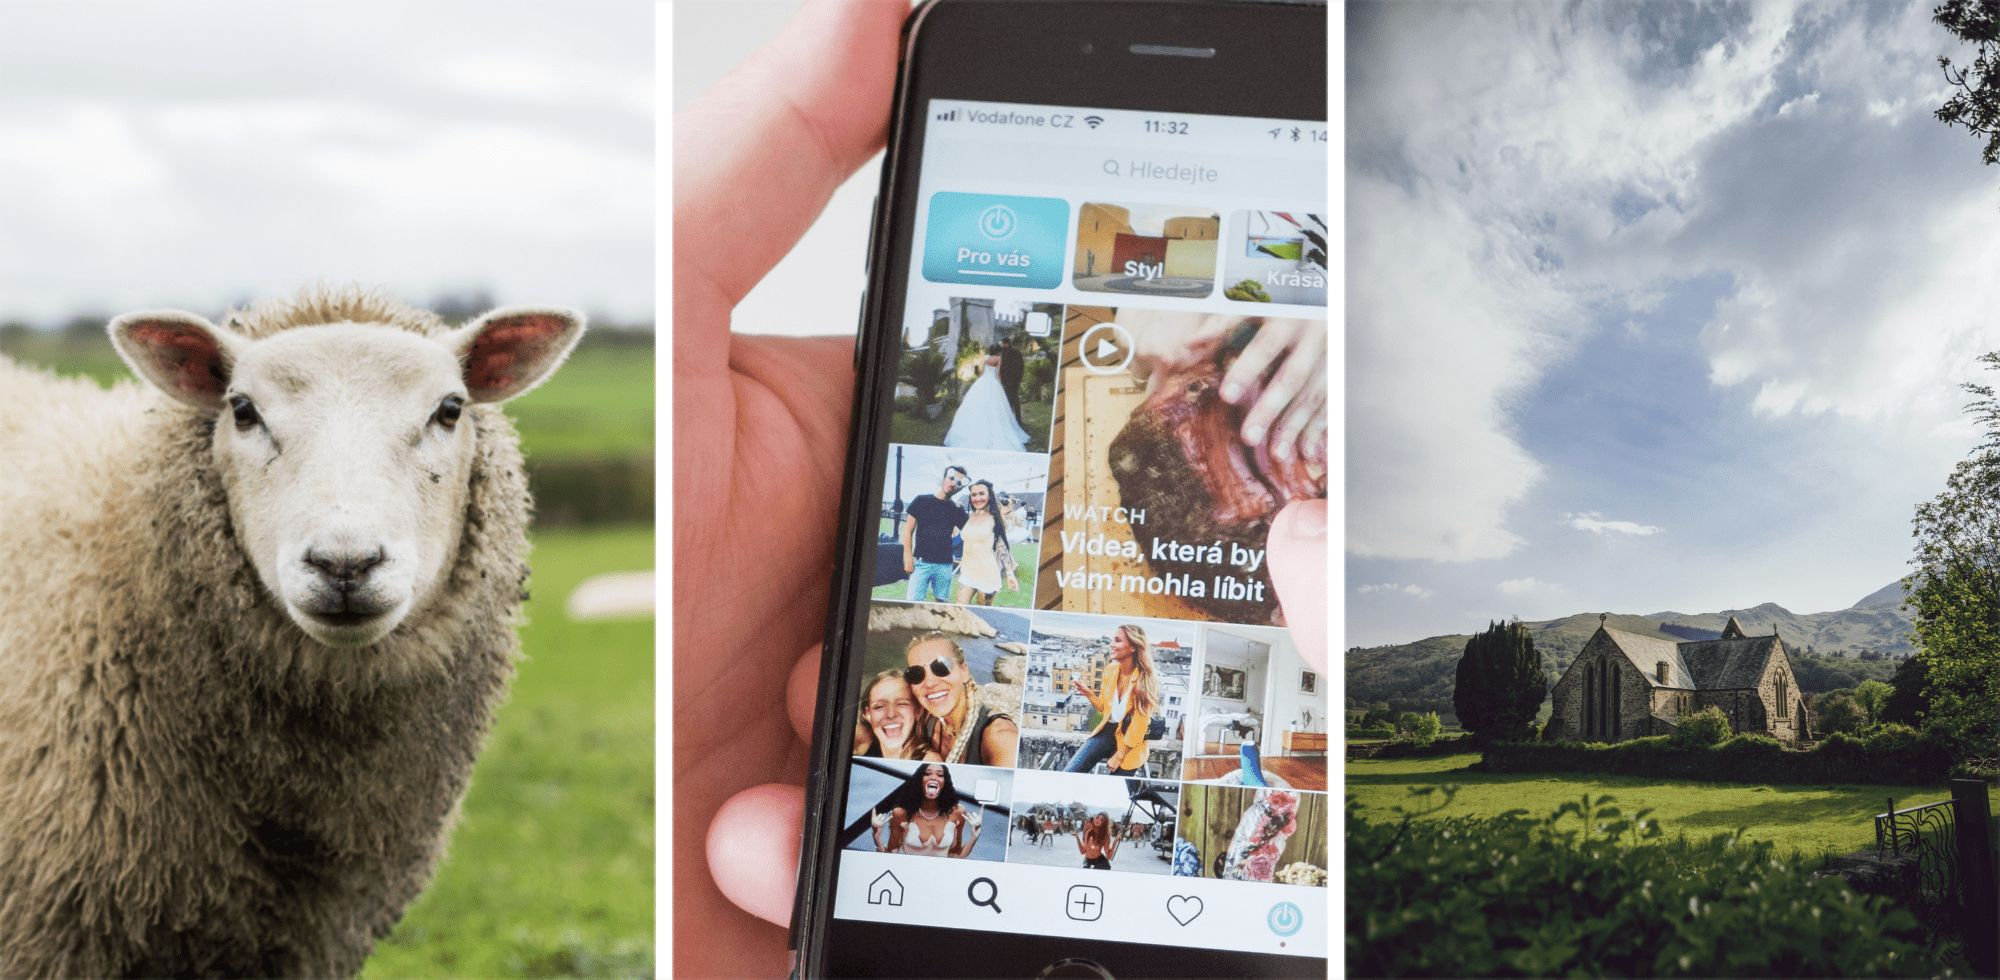 41+ Fantastic Wales Instagram Captions for the Perfect Post via @girlsgonelondon